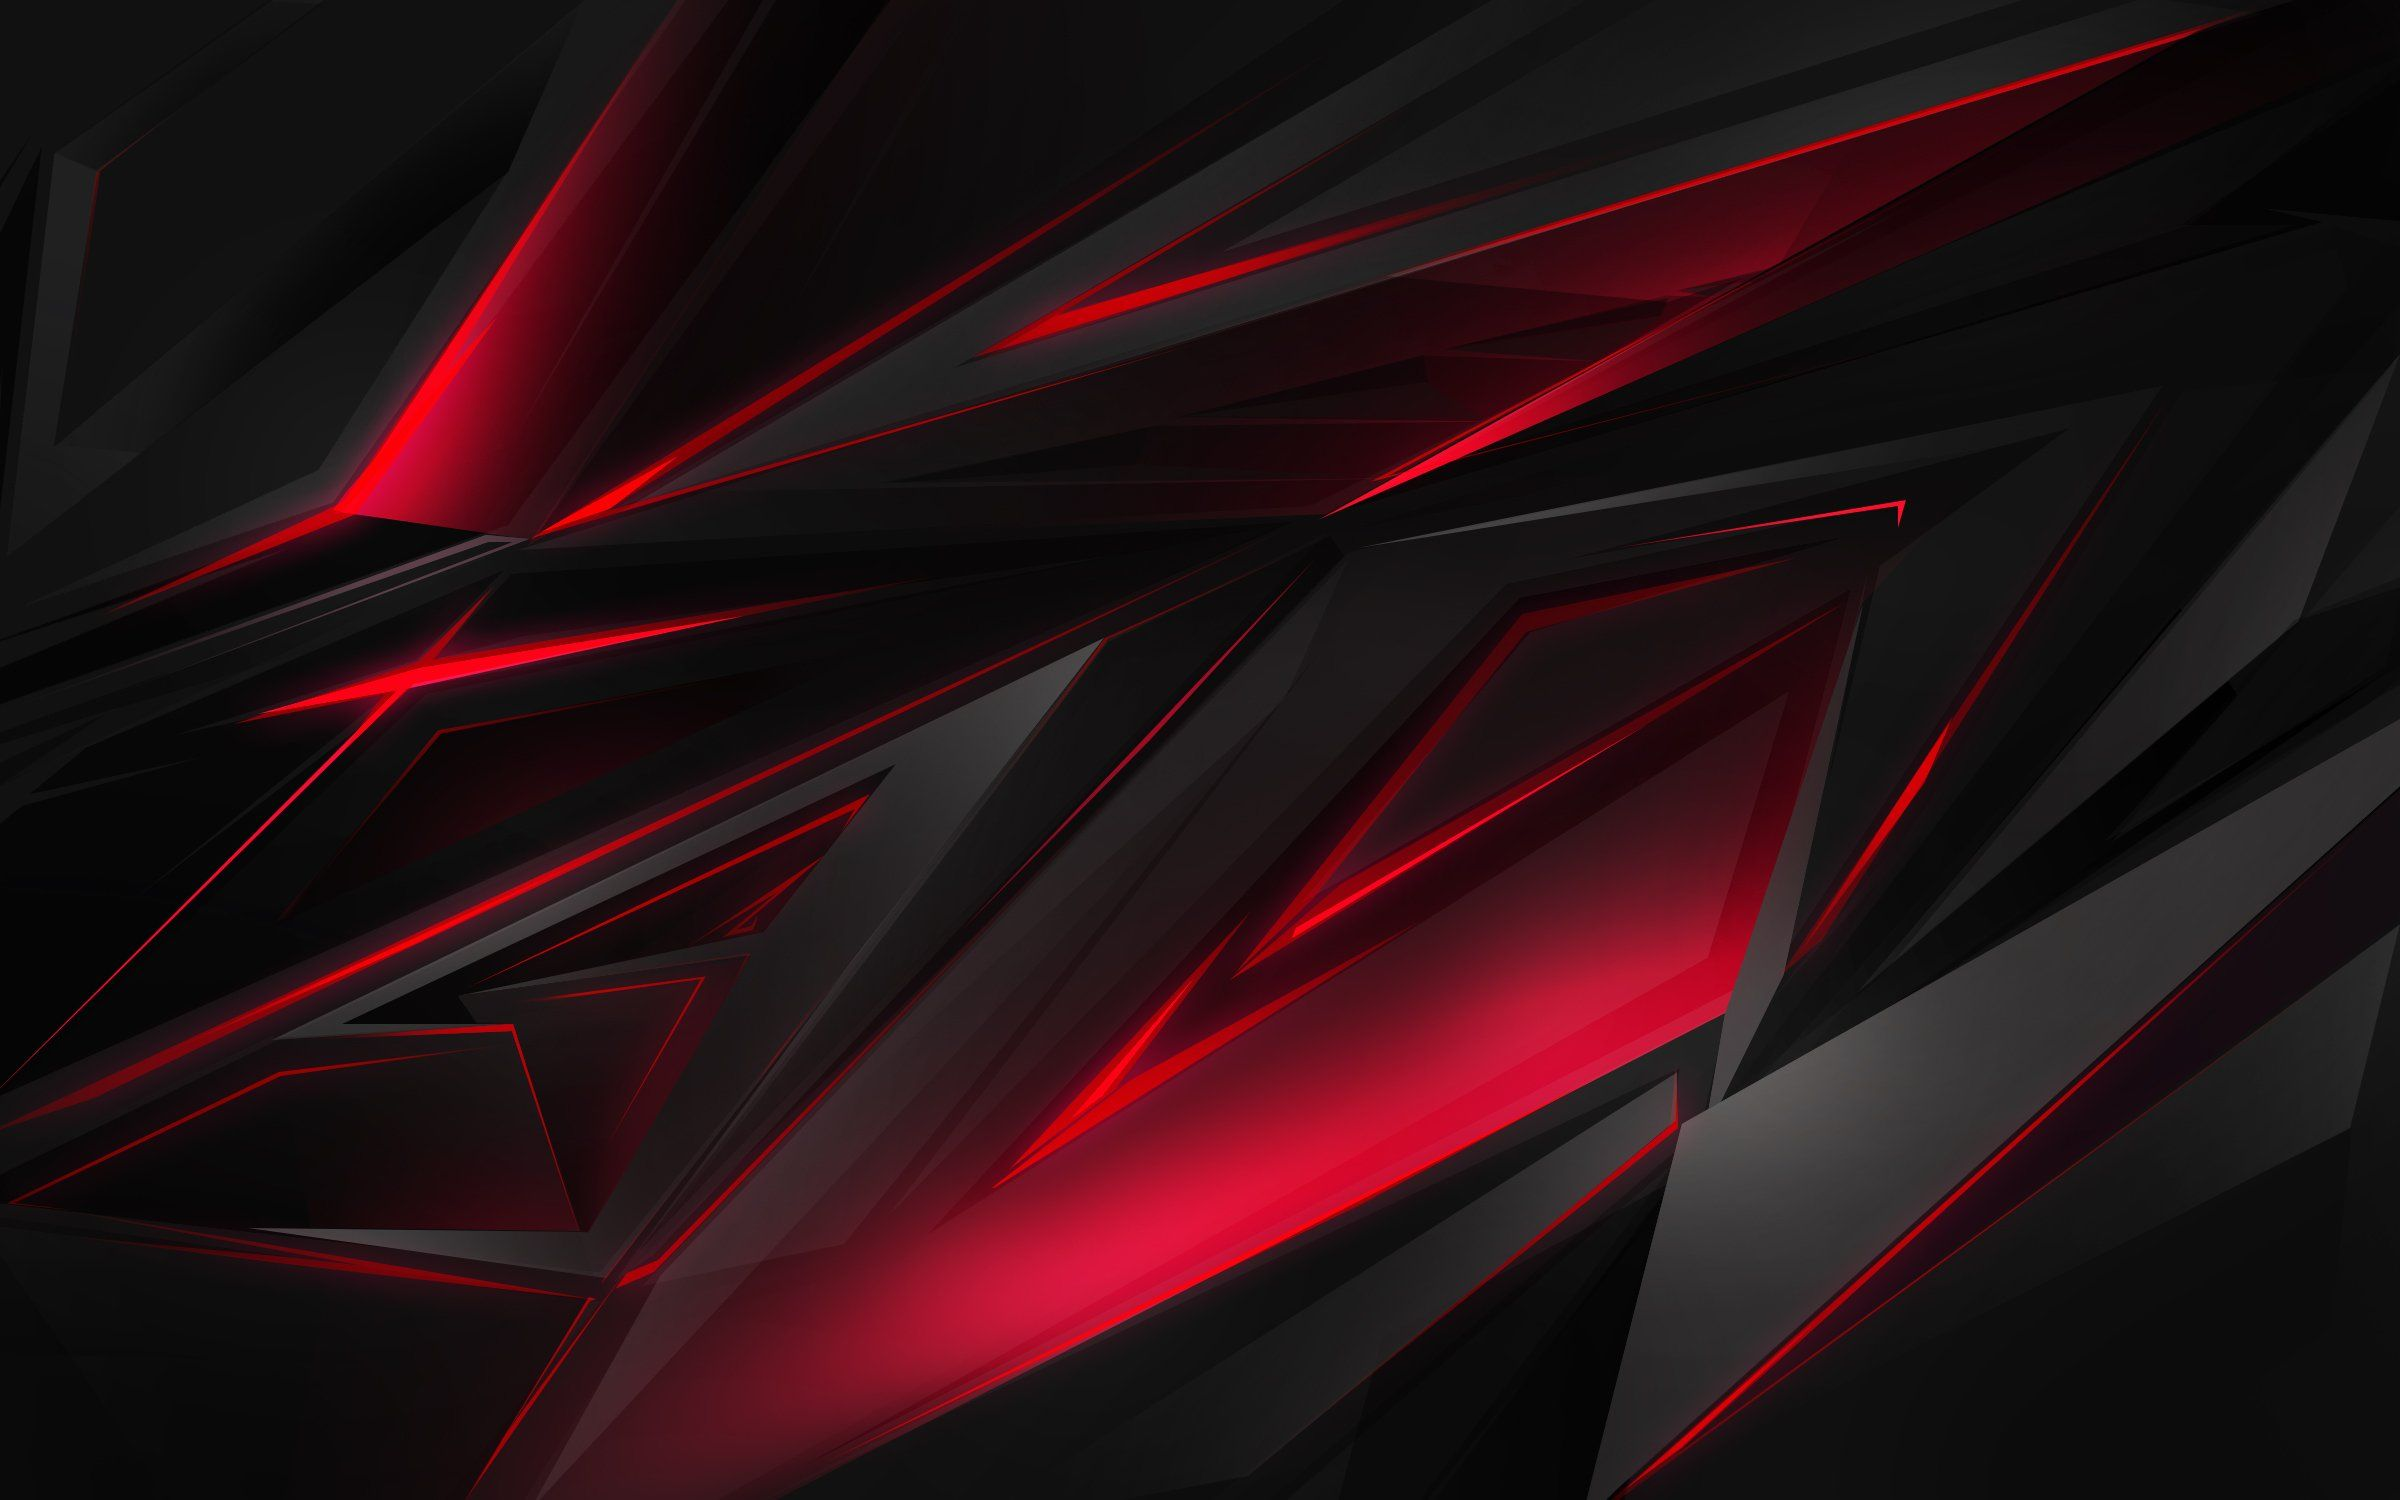 Black Red Shards Wallpapers Wallpaper Cave